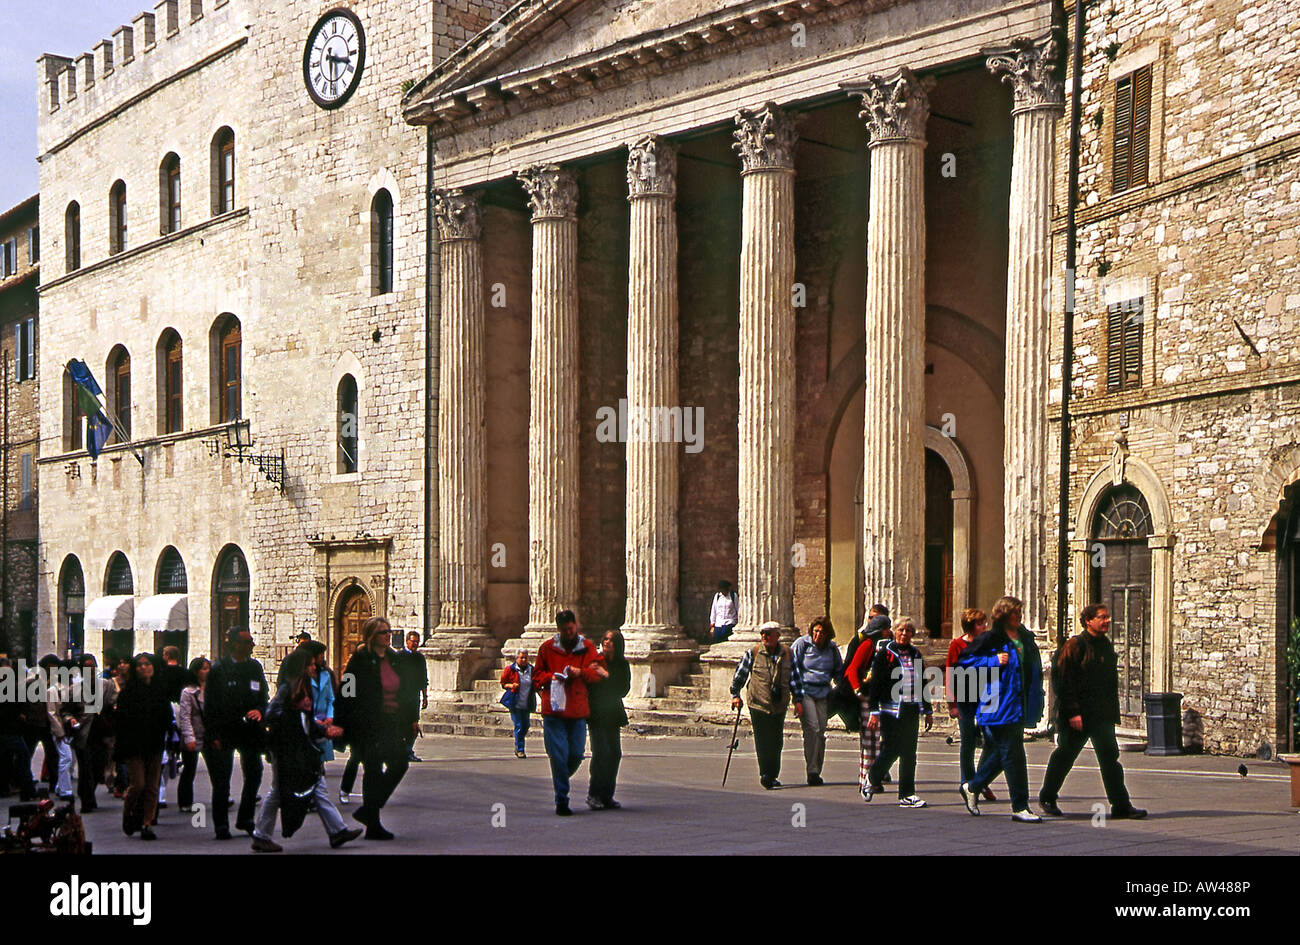 Temple of Minerva - Assisi Rome - Stock Image